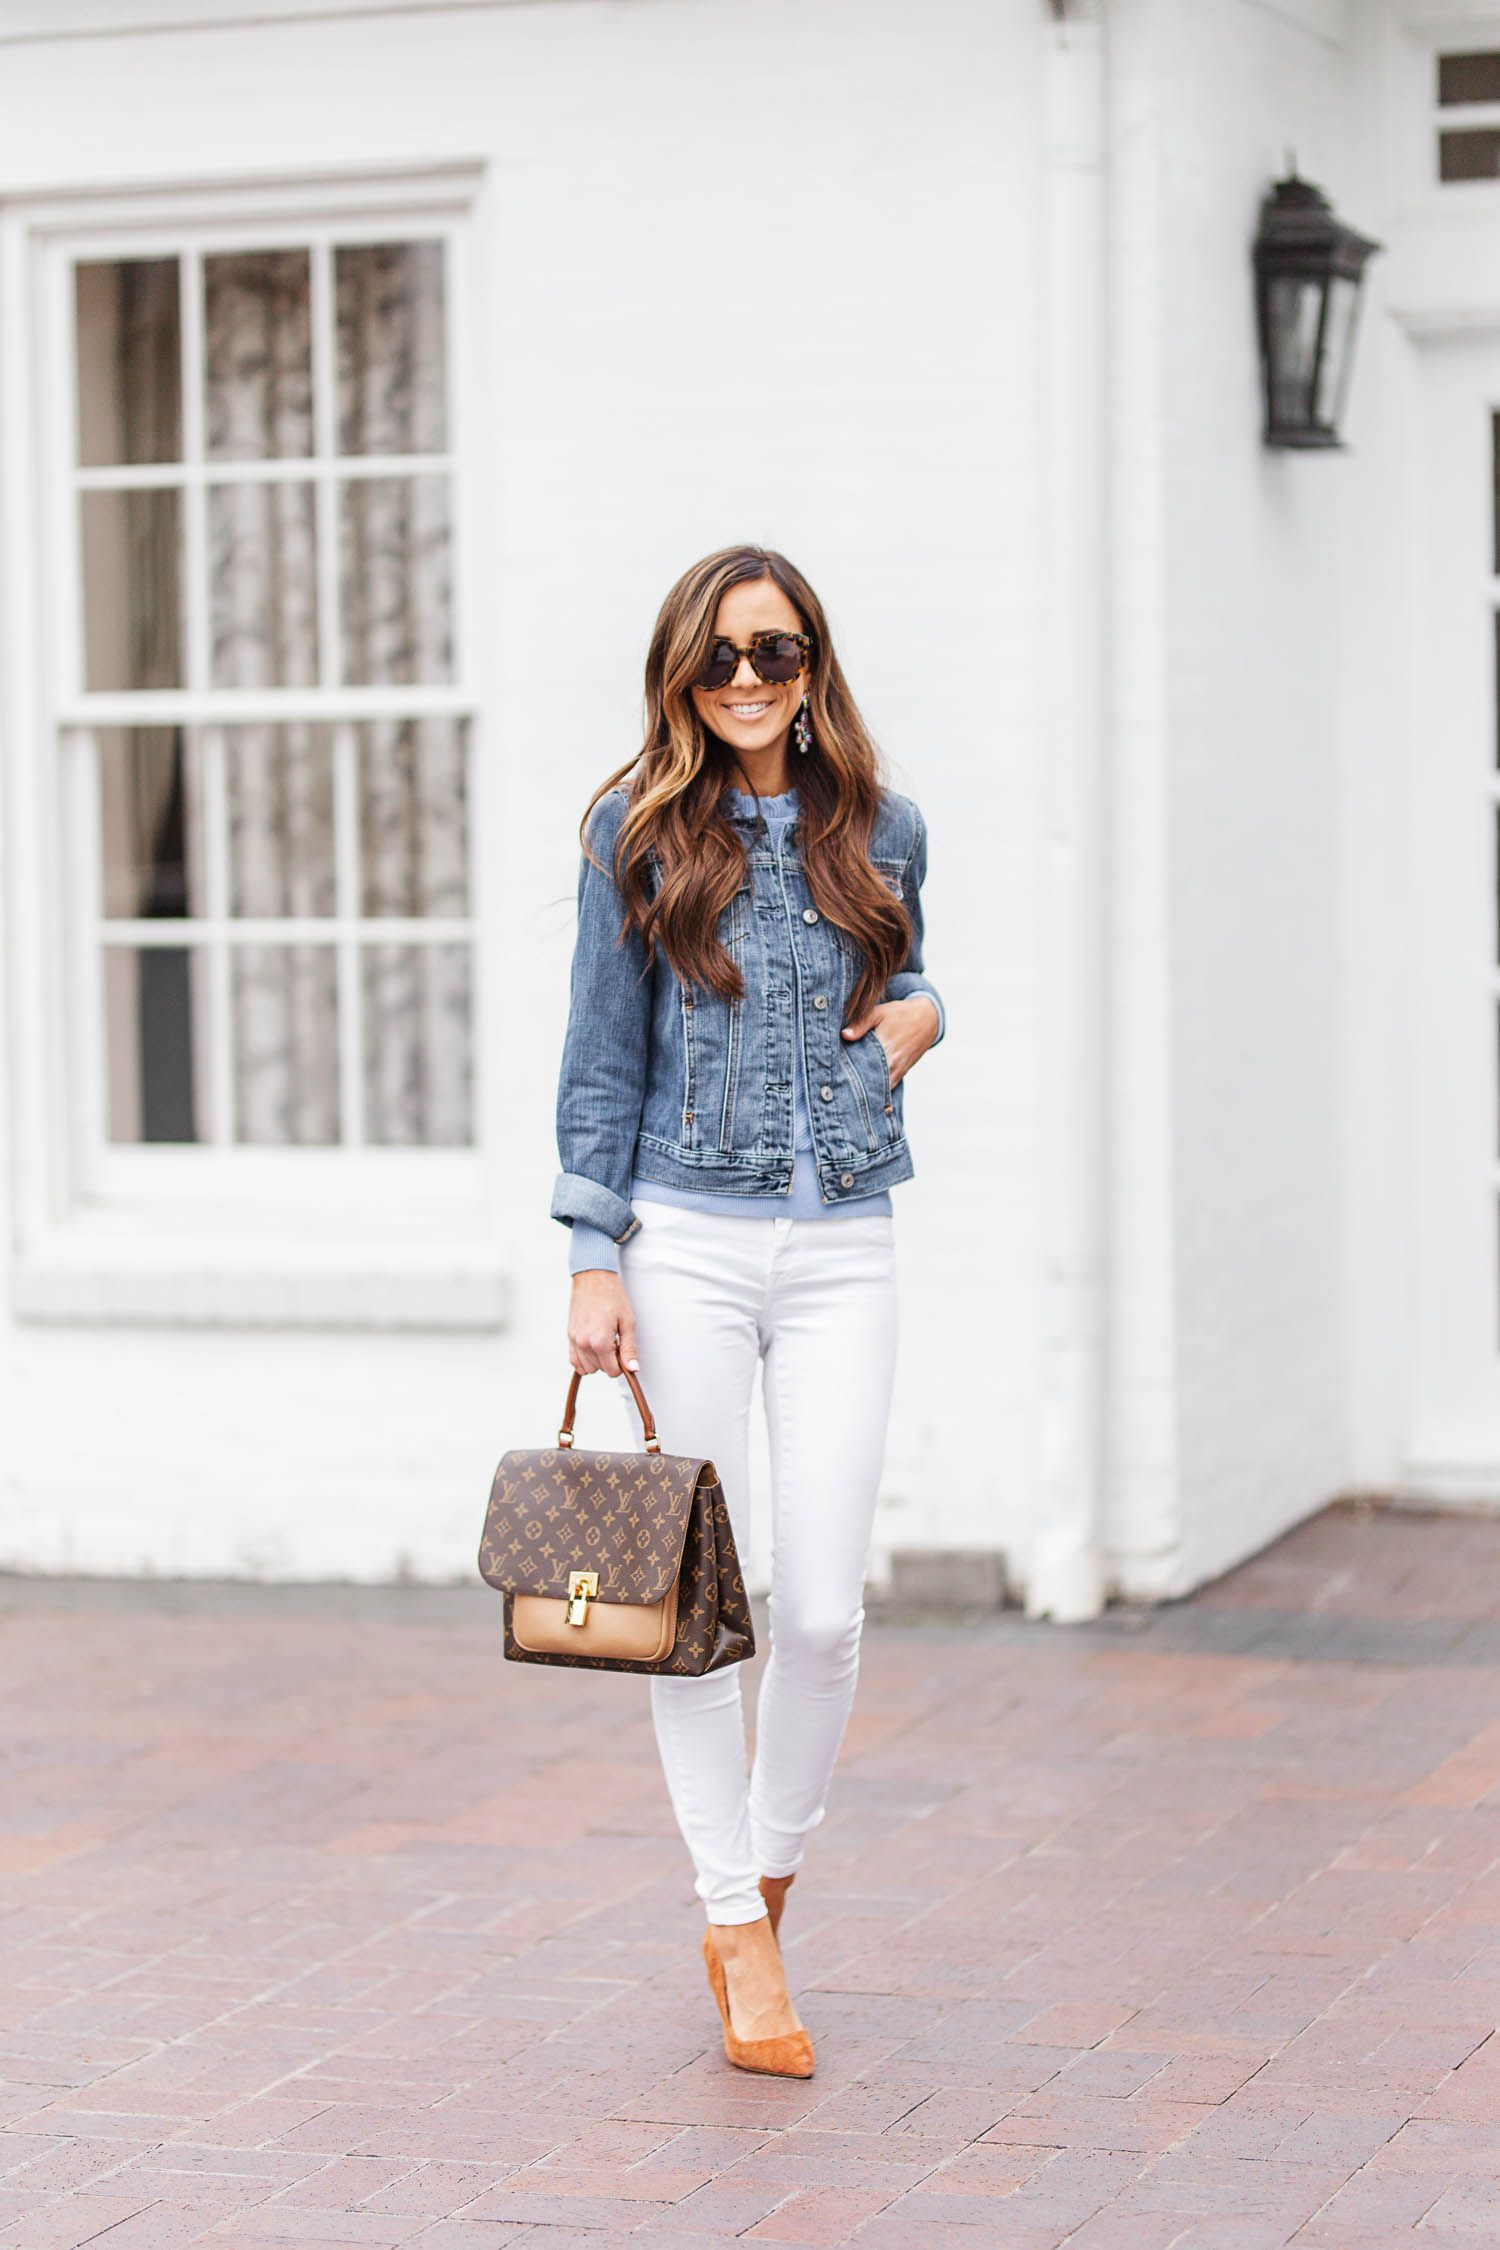 Where To Buy The Cutest Denim Jacket Under 60 Alyson Haley Denim Jacket Outfit Denim Fashion Denim Outfit [ 2250 x 1500 Pixel ]